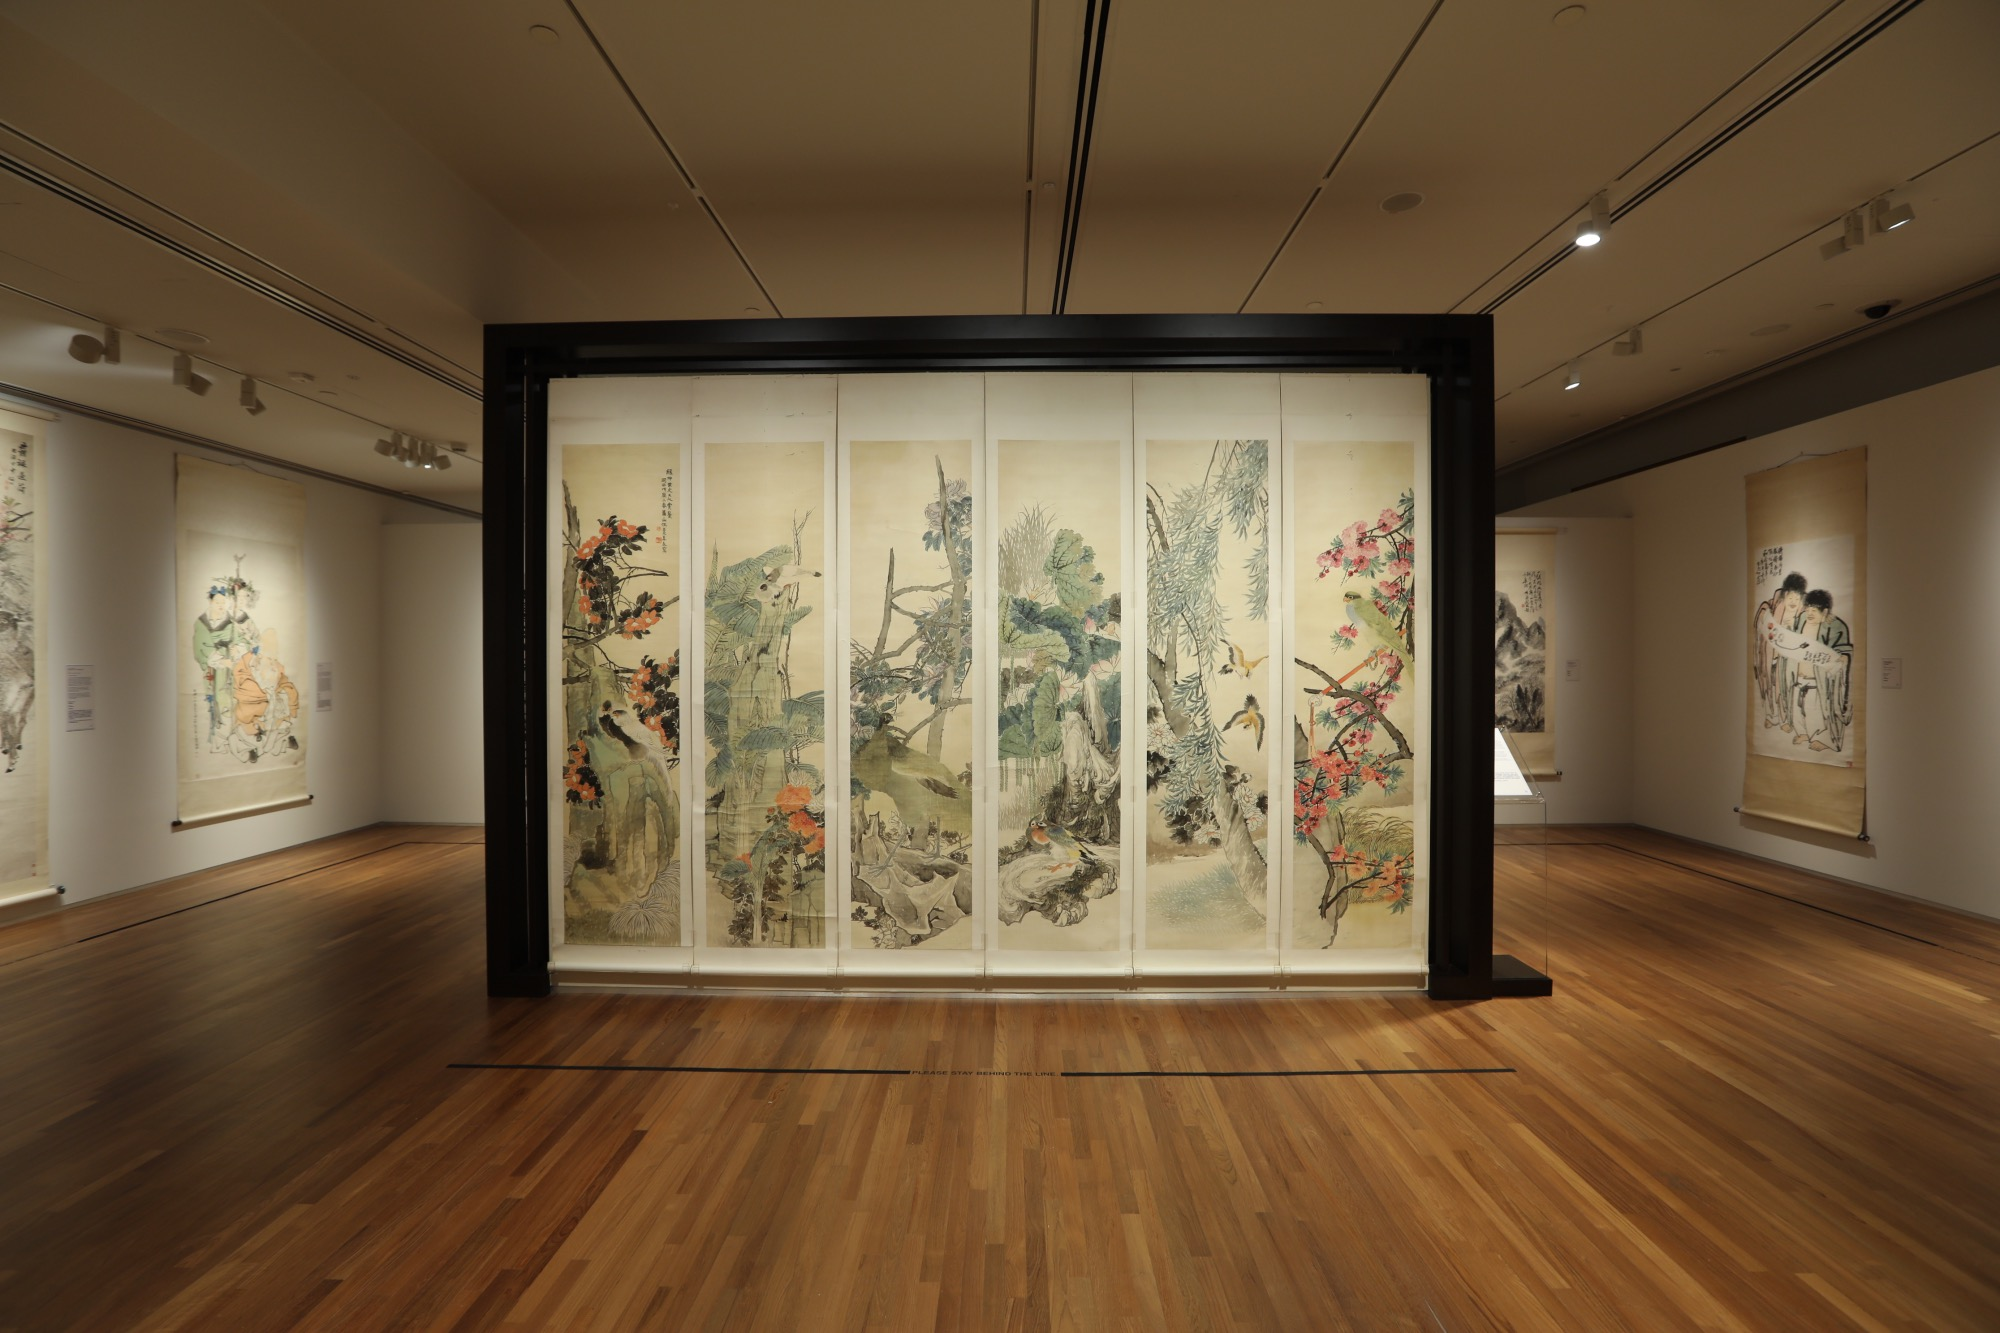 Where to Find Chinese Ink Art in Singapore